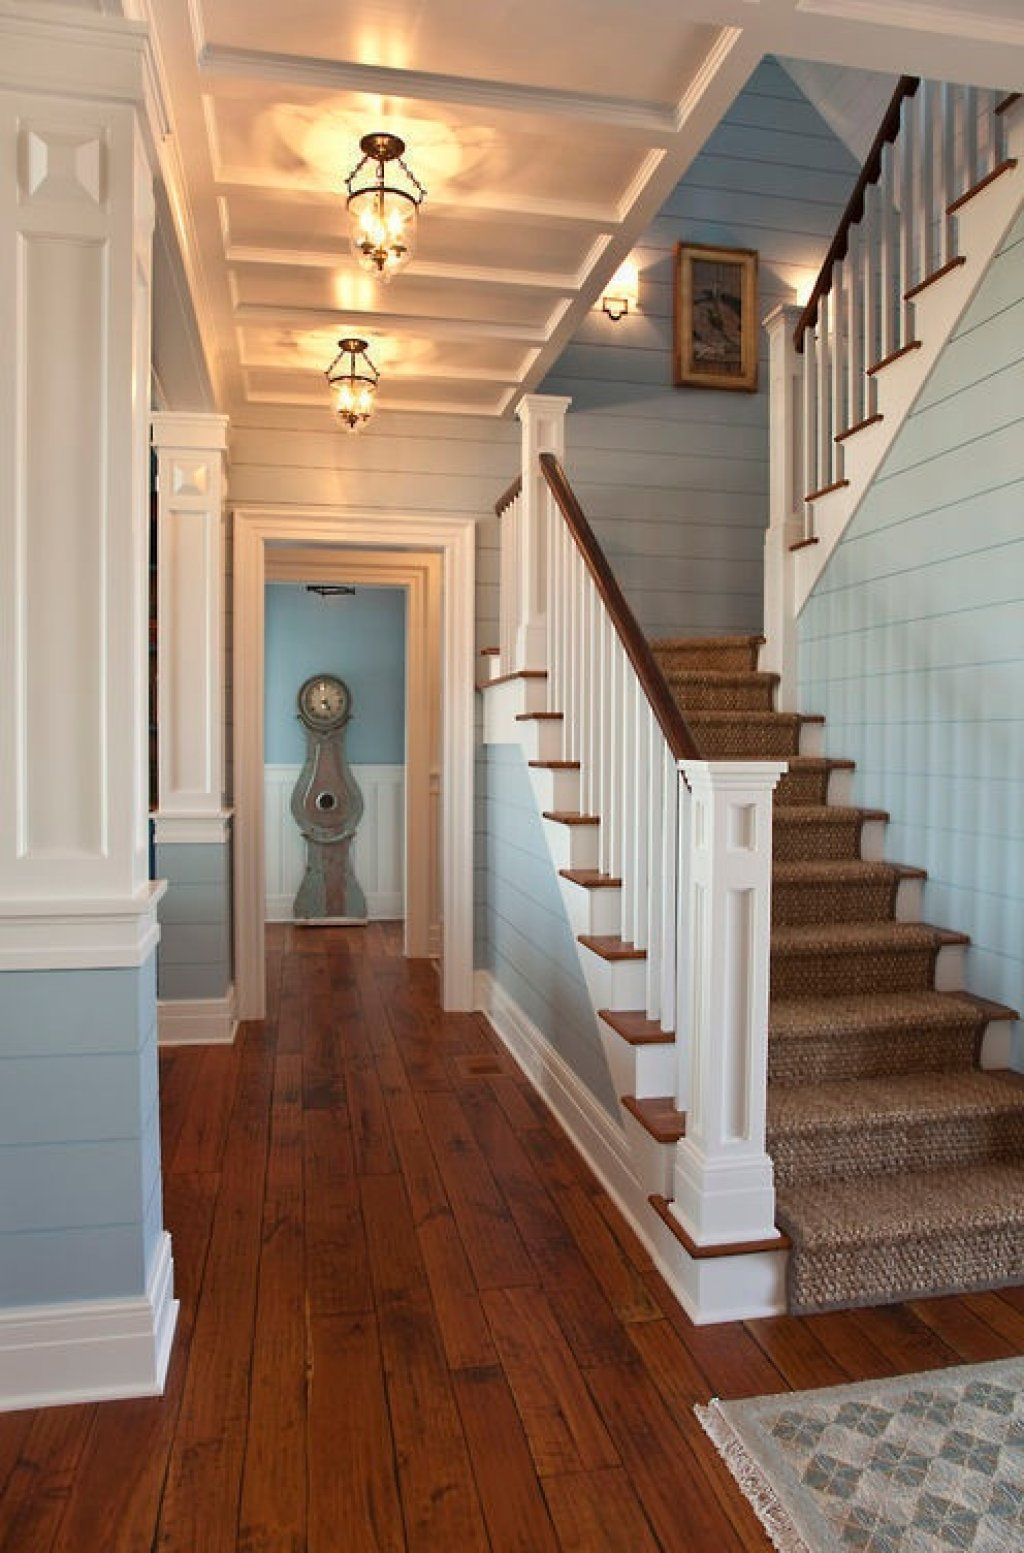 Love the shiplap siding used in this foyer, stairway via